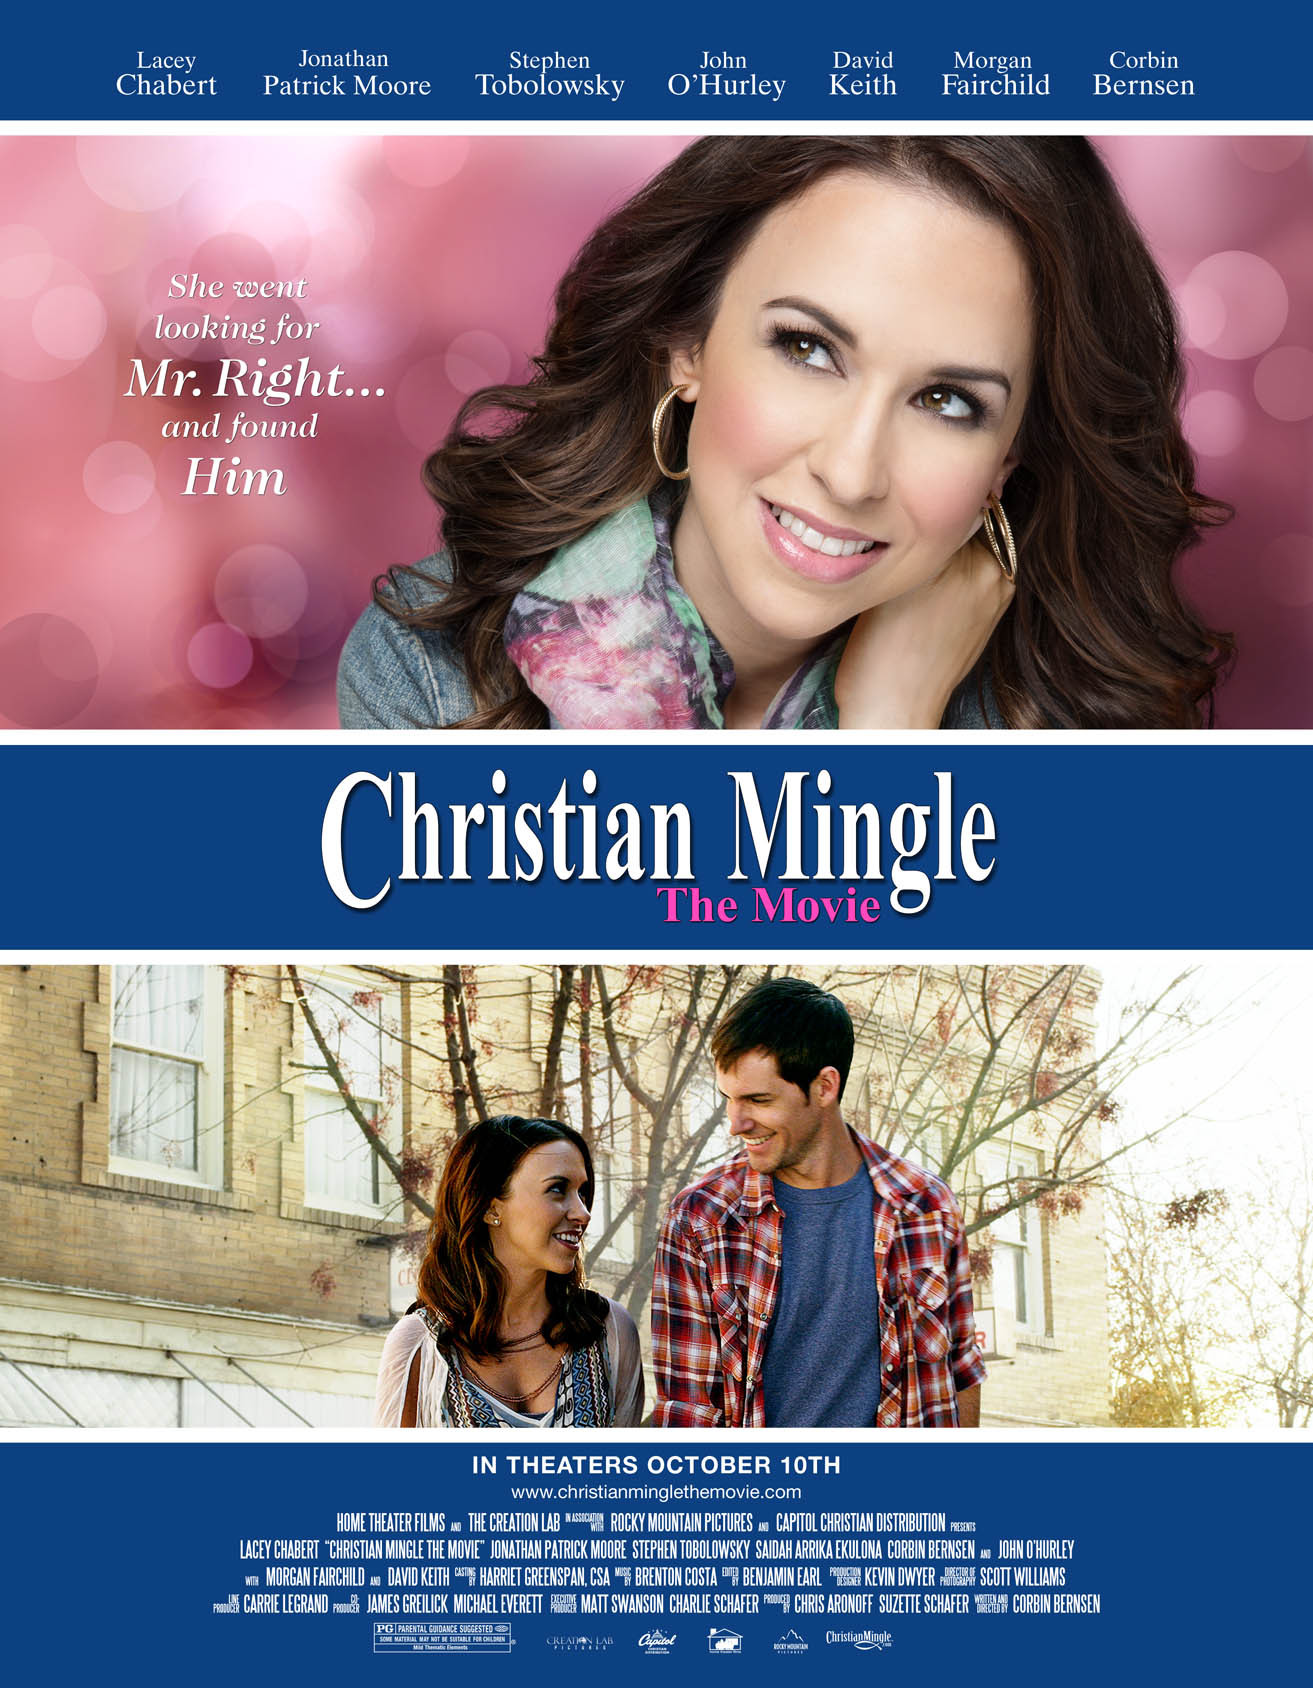 Christian mingle com